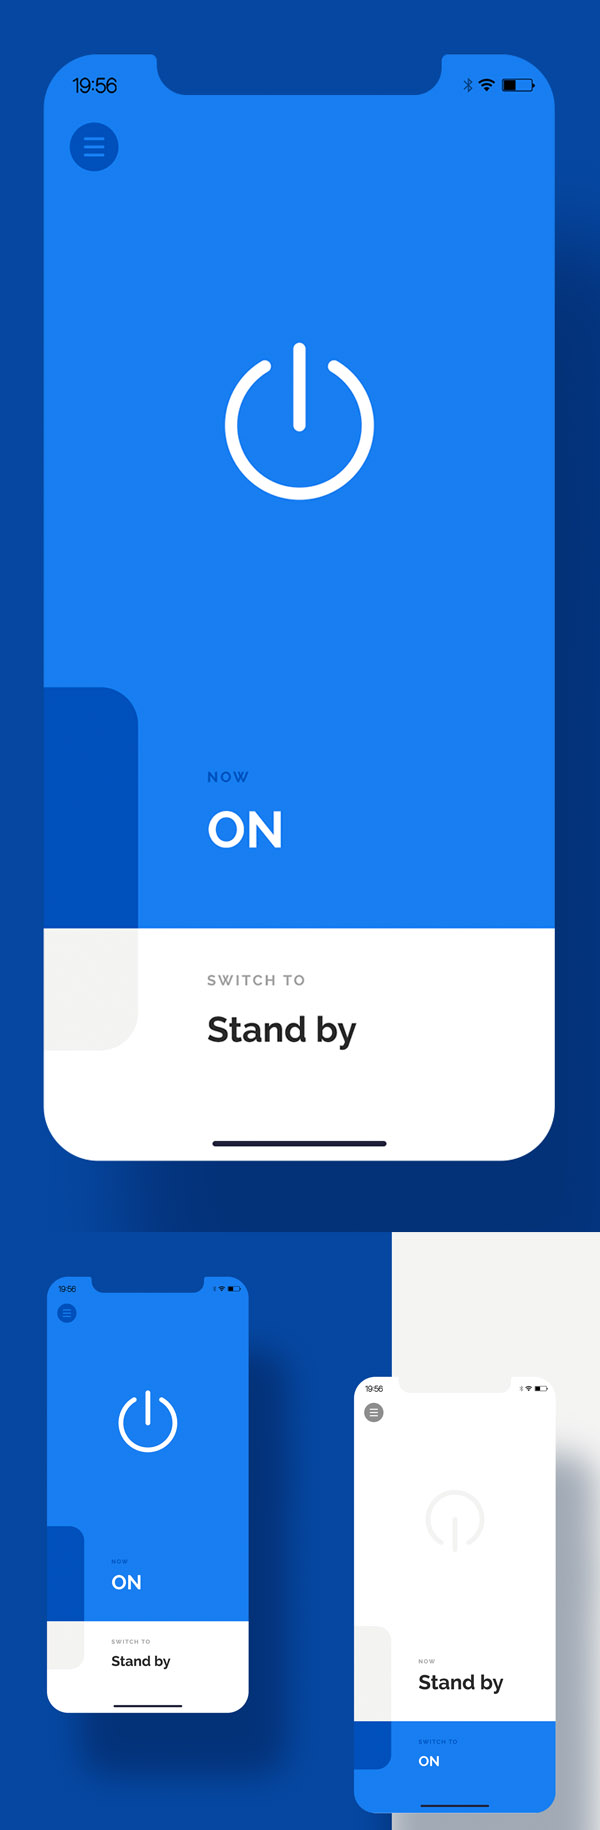 Modern Mobile App UI Design with Amazing UX - 22